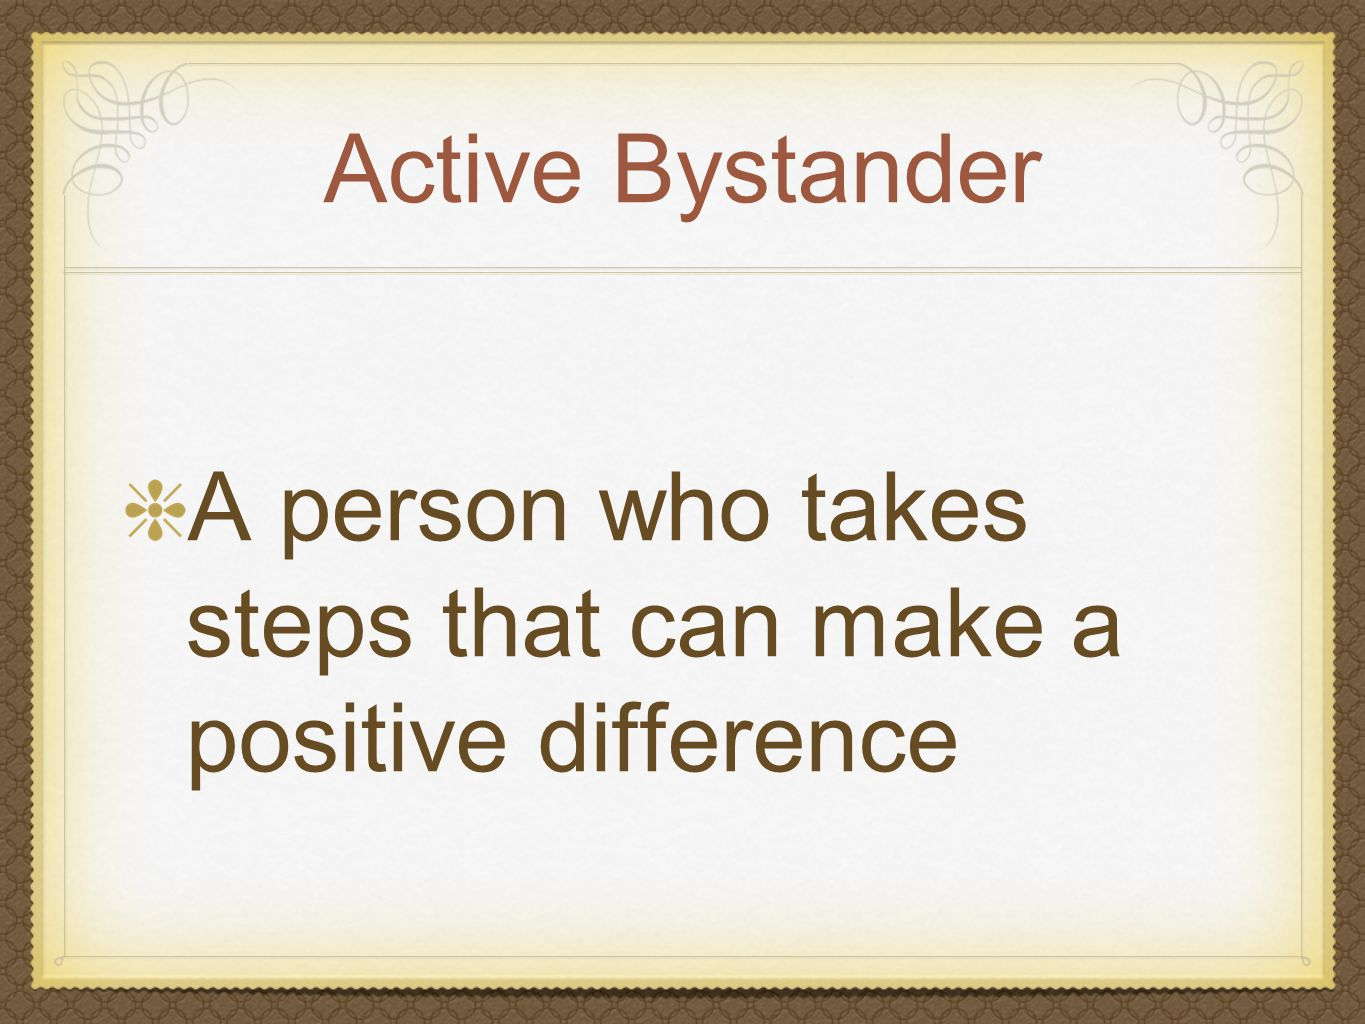 Active Bystander A person who takes steps that can make a positive difference